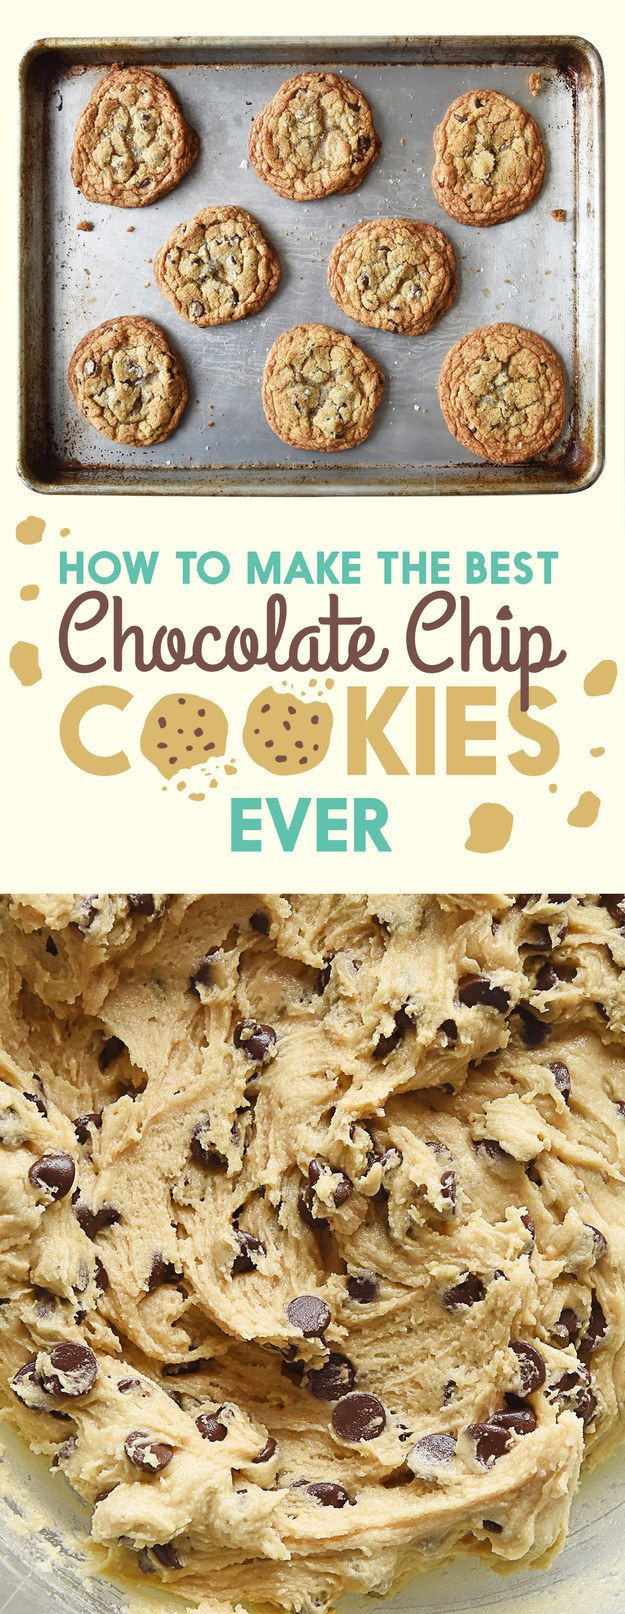 Buzzfeed Chocolate Chip Cookies  Pin by BuzzFeed on Recipes Pinterest